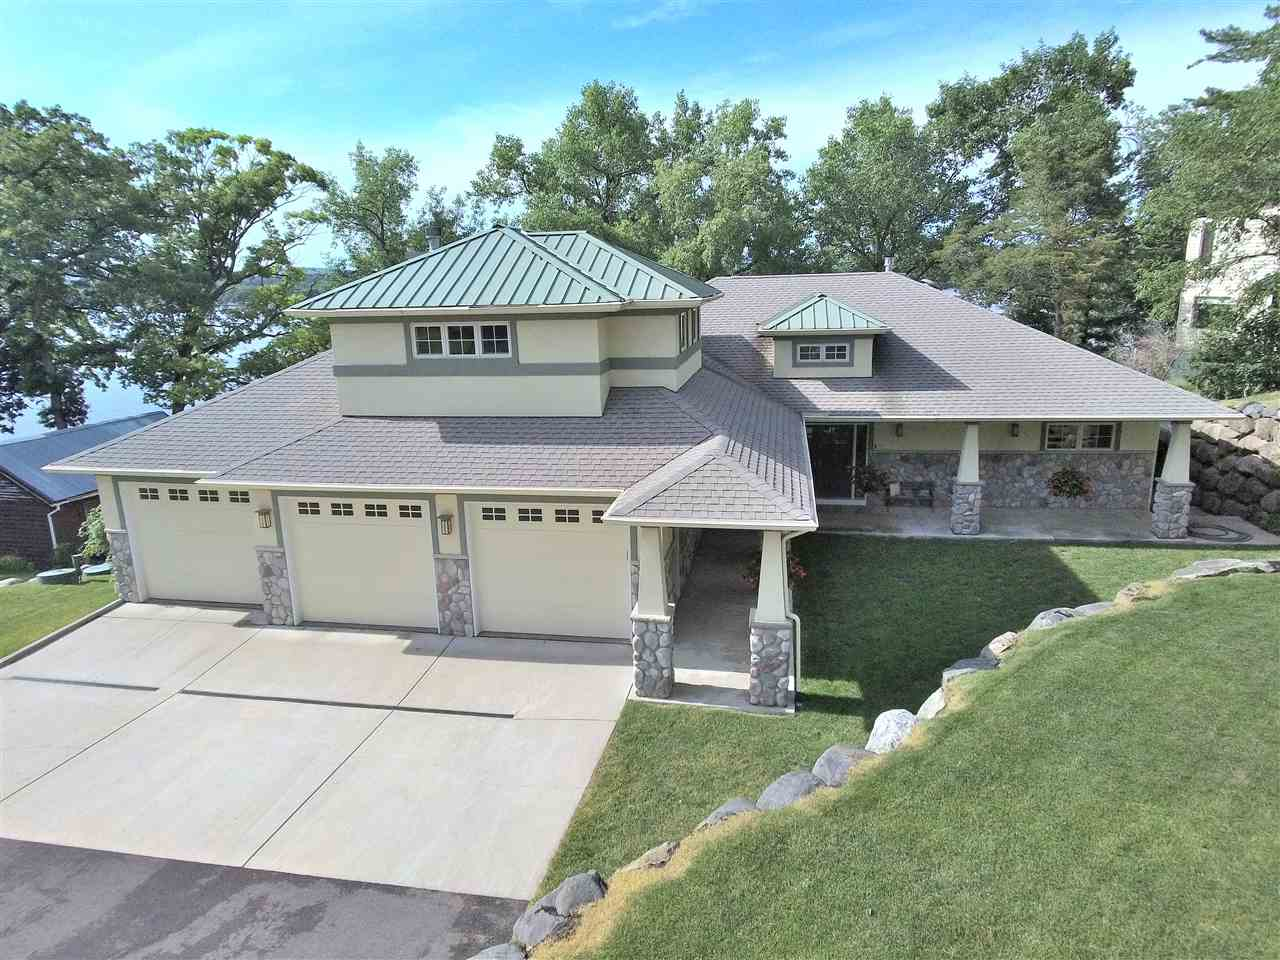 W12602 PLEASANT VIEW PARK RD, West Point, WI 53555